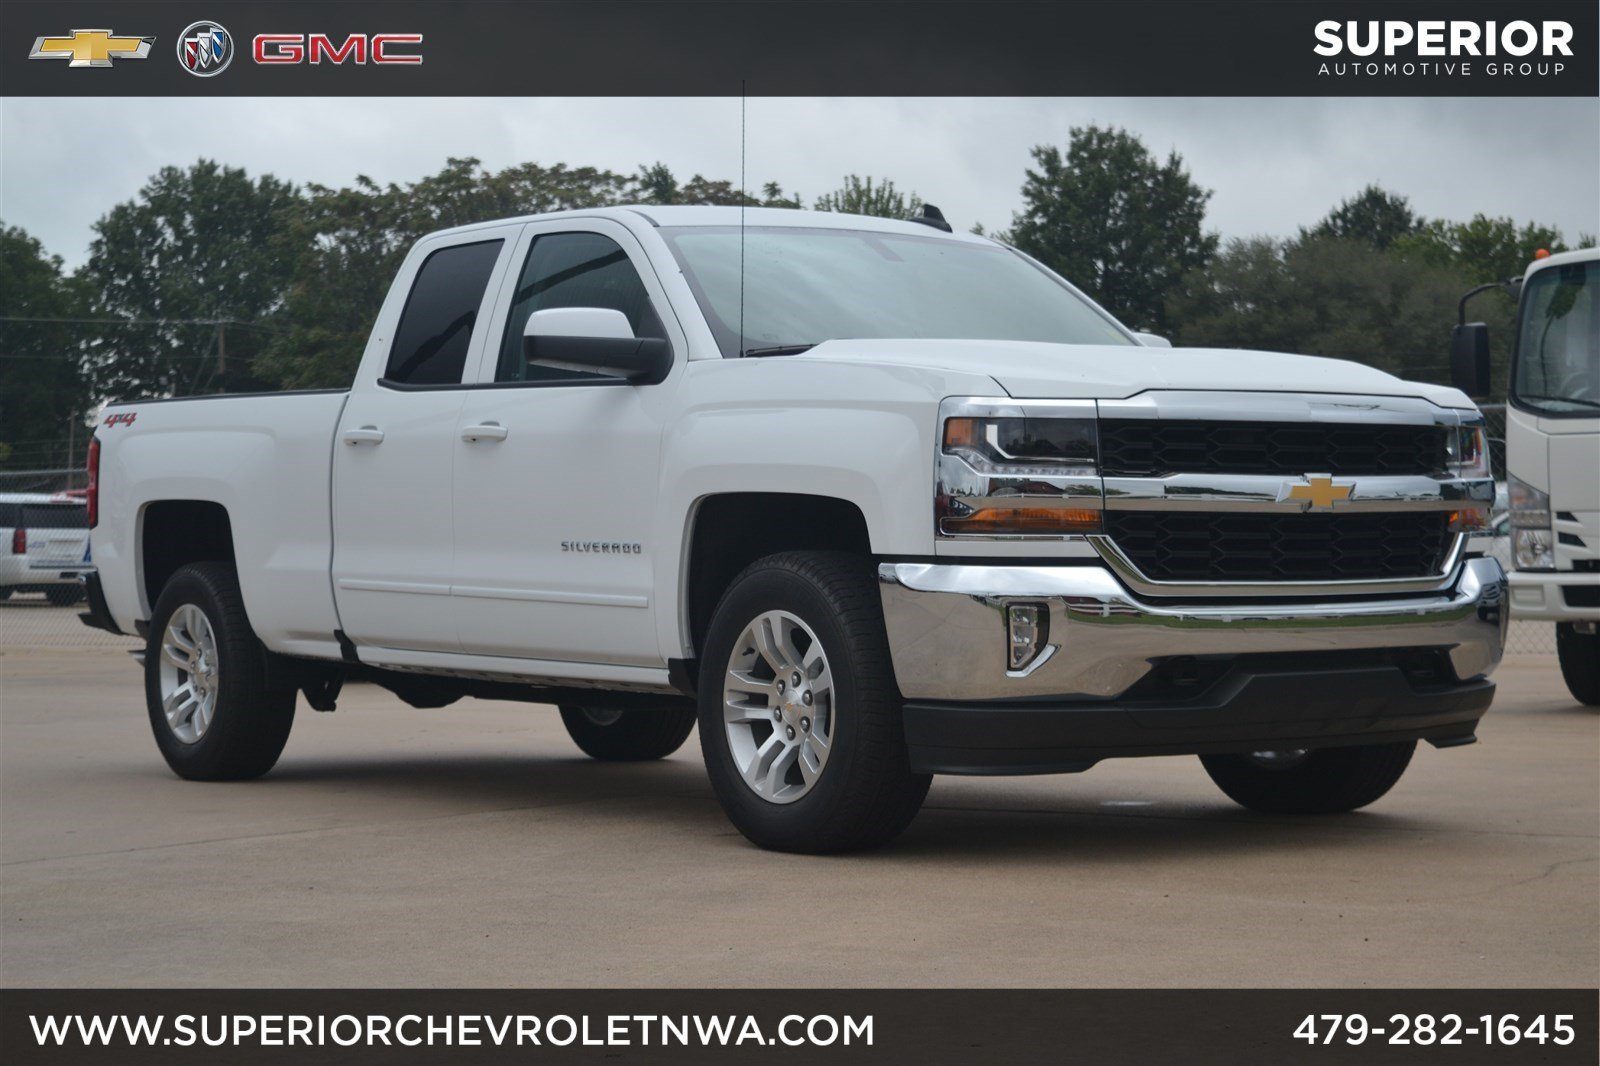 New 2019 Chevrolet Silverado 1500 Ld Lt 4wd Crew Cab Extended Cab